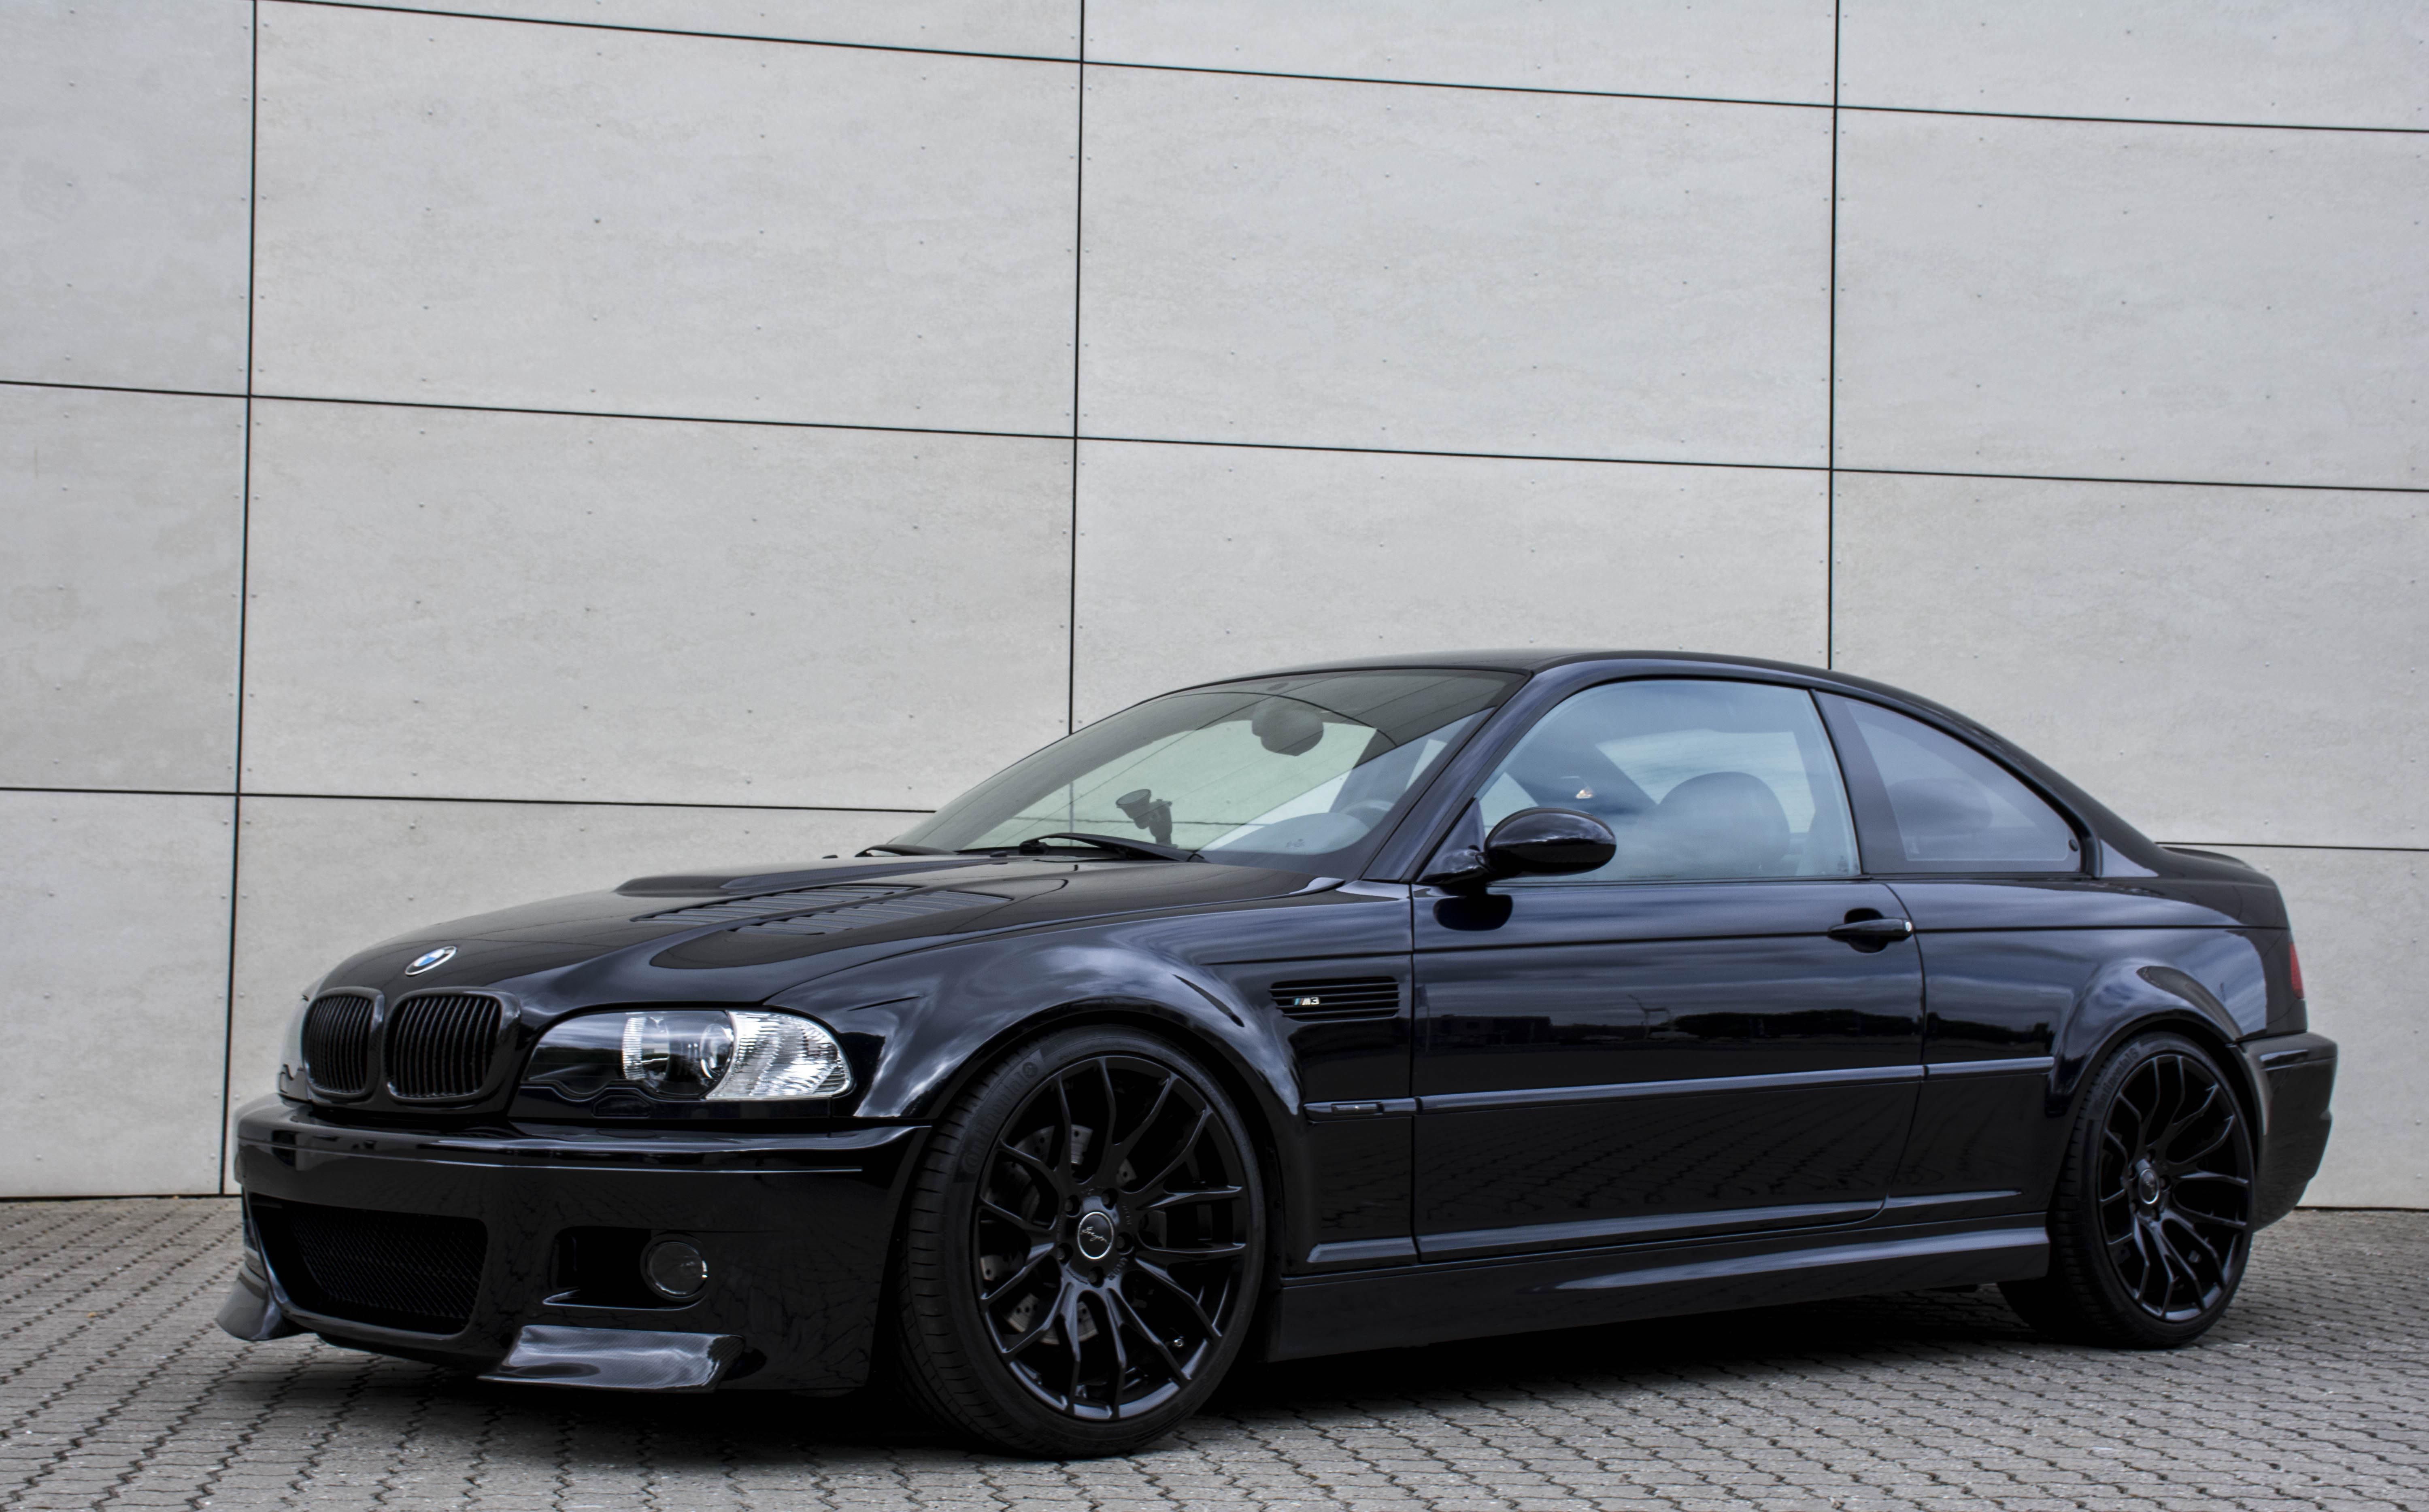 2108171e8aa9 ... Schmiedmann - New parts. BMW M3 E46 with seibon carbon hood and  kidneys